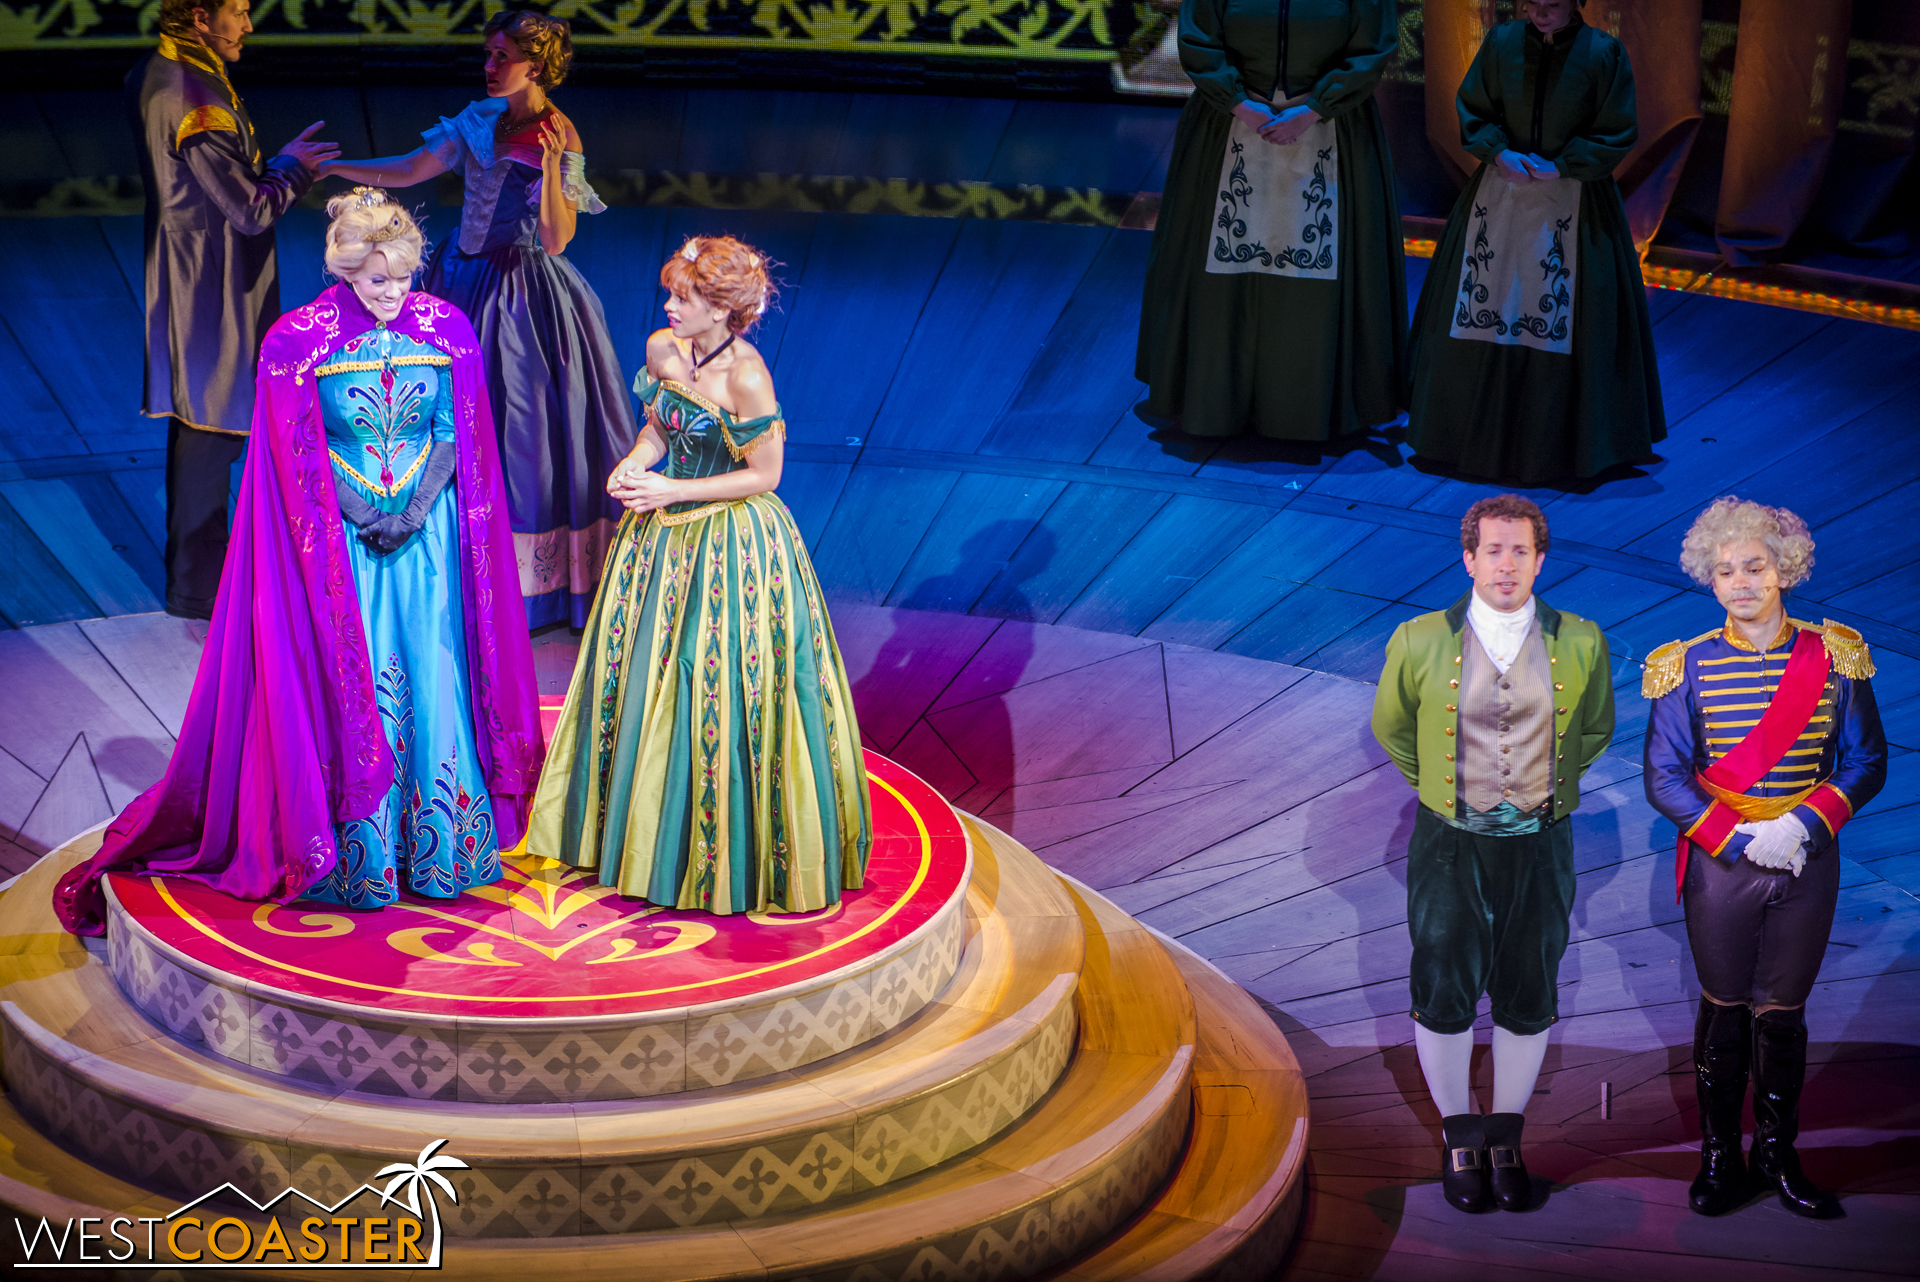 Anna begs for mercy for the land, and Elsa agrees that she might relinquish Arendale if she can be pleased with a magnificent dance.